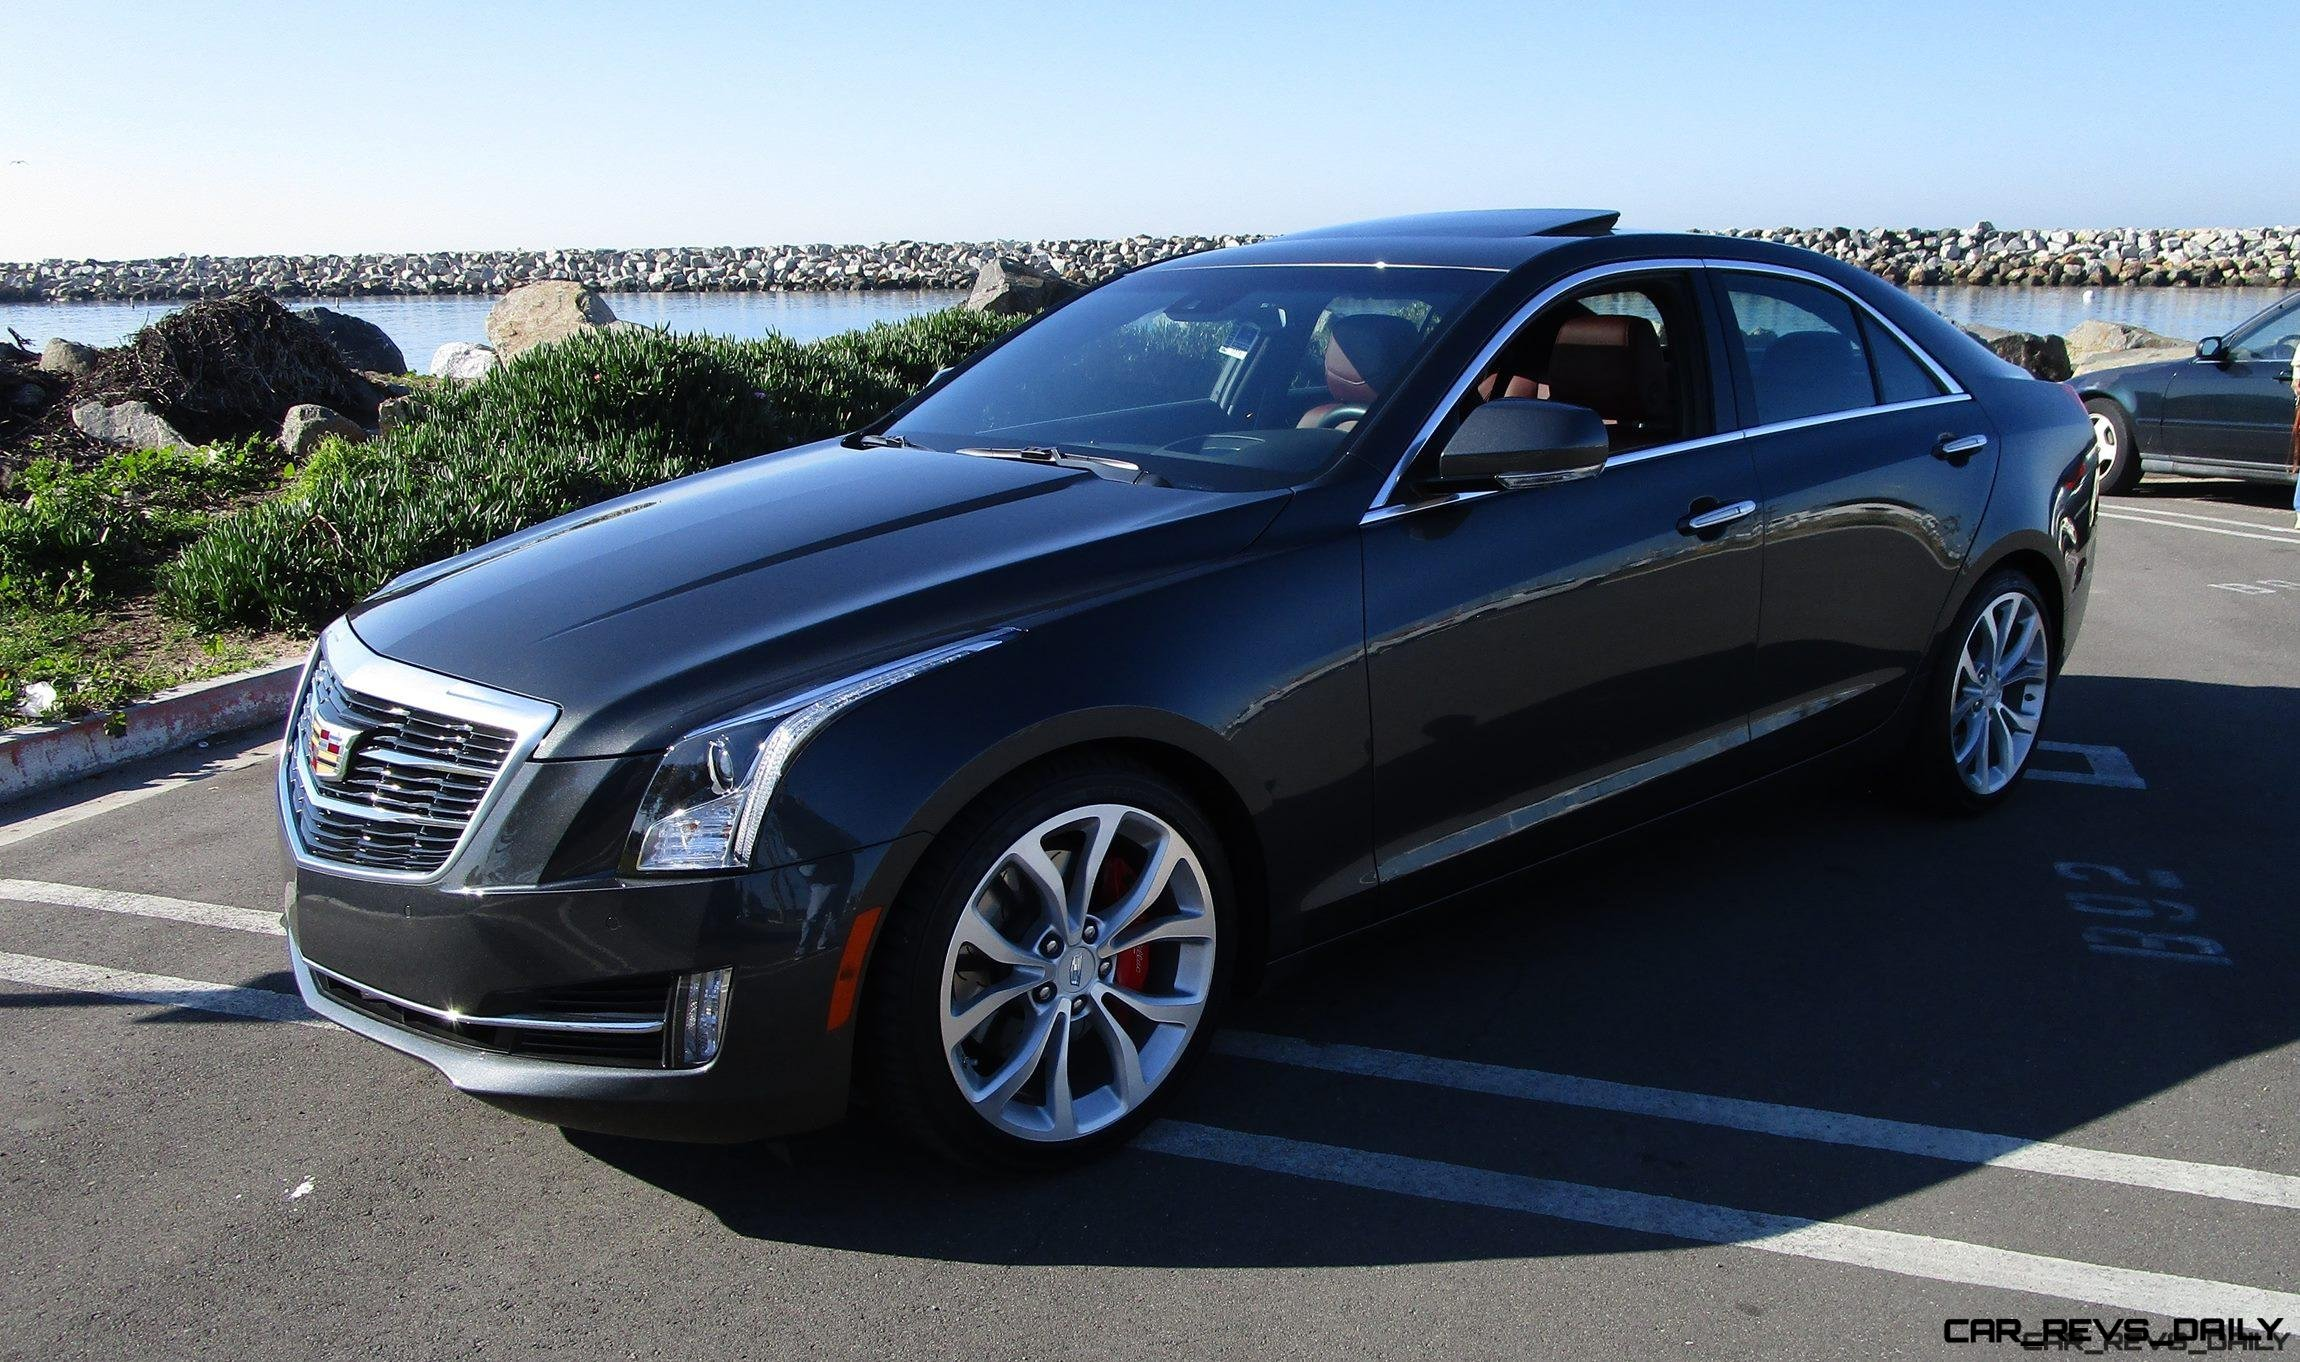 2017 Cadillac Ats 3 6 Performance Road Test Review By